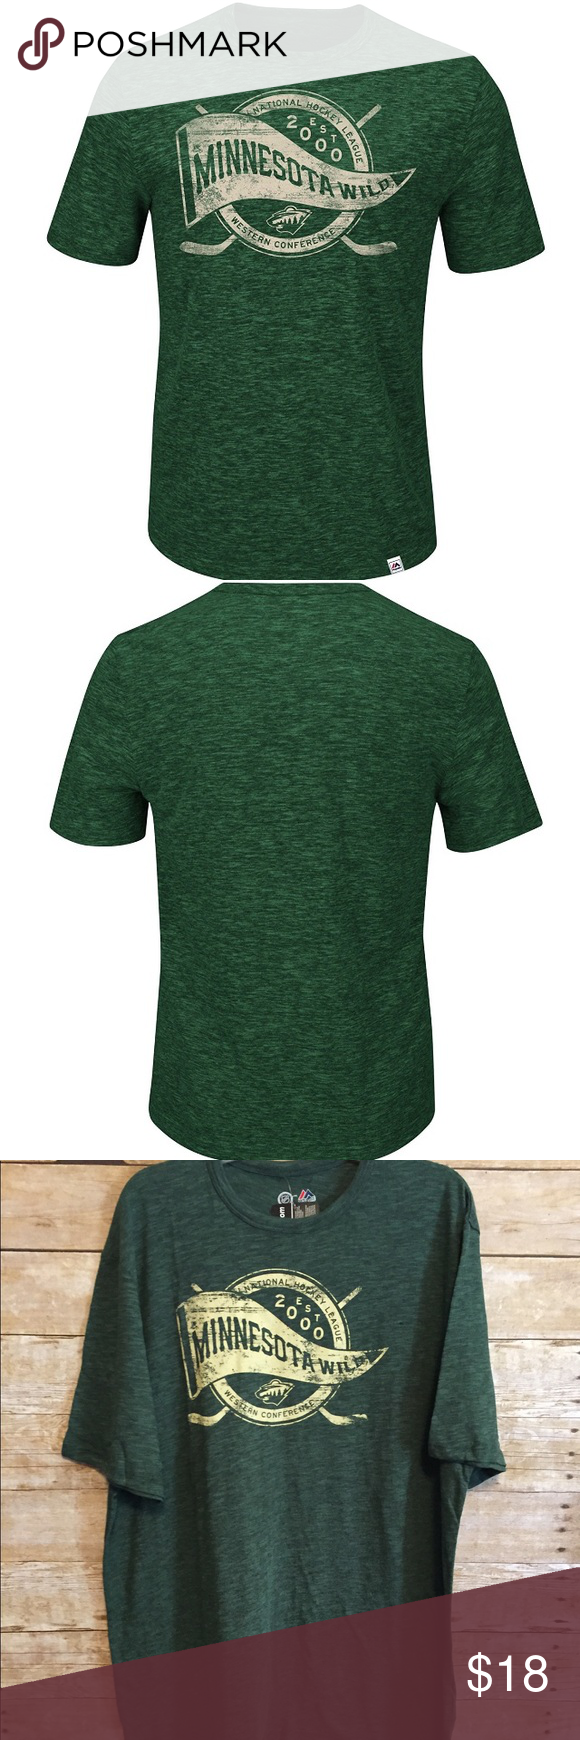 NHL Minnesota Wild Glorious Finish Short Slv Tee, Classic short sleeve crew neck tee, made of a durable cotton blend soft hand print Decoration Majestic labeled with that new and old look - great when out with friends or at the game.  #1 for NHL this season.                                                            Size:  XL.                                                          60% Cotton, 40% Polyester.                           Slub Fabric…